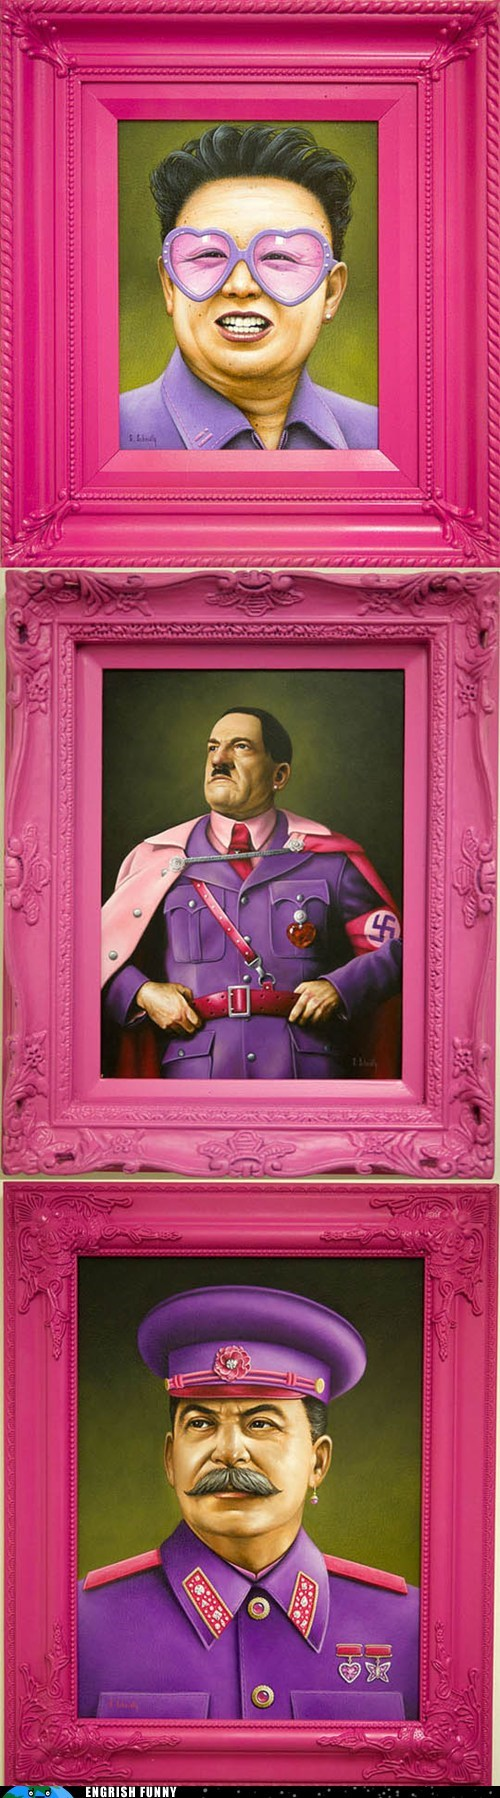 adolf hitler dictators fabulous gay gay pride Hall of Fame hitler joseph stalin Kim Jong-Il scott sheidly stalin